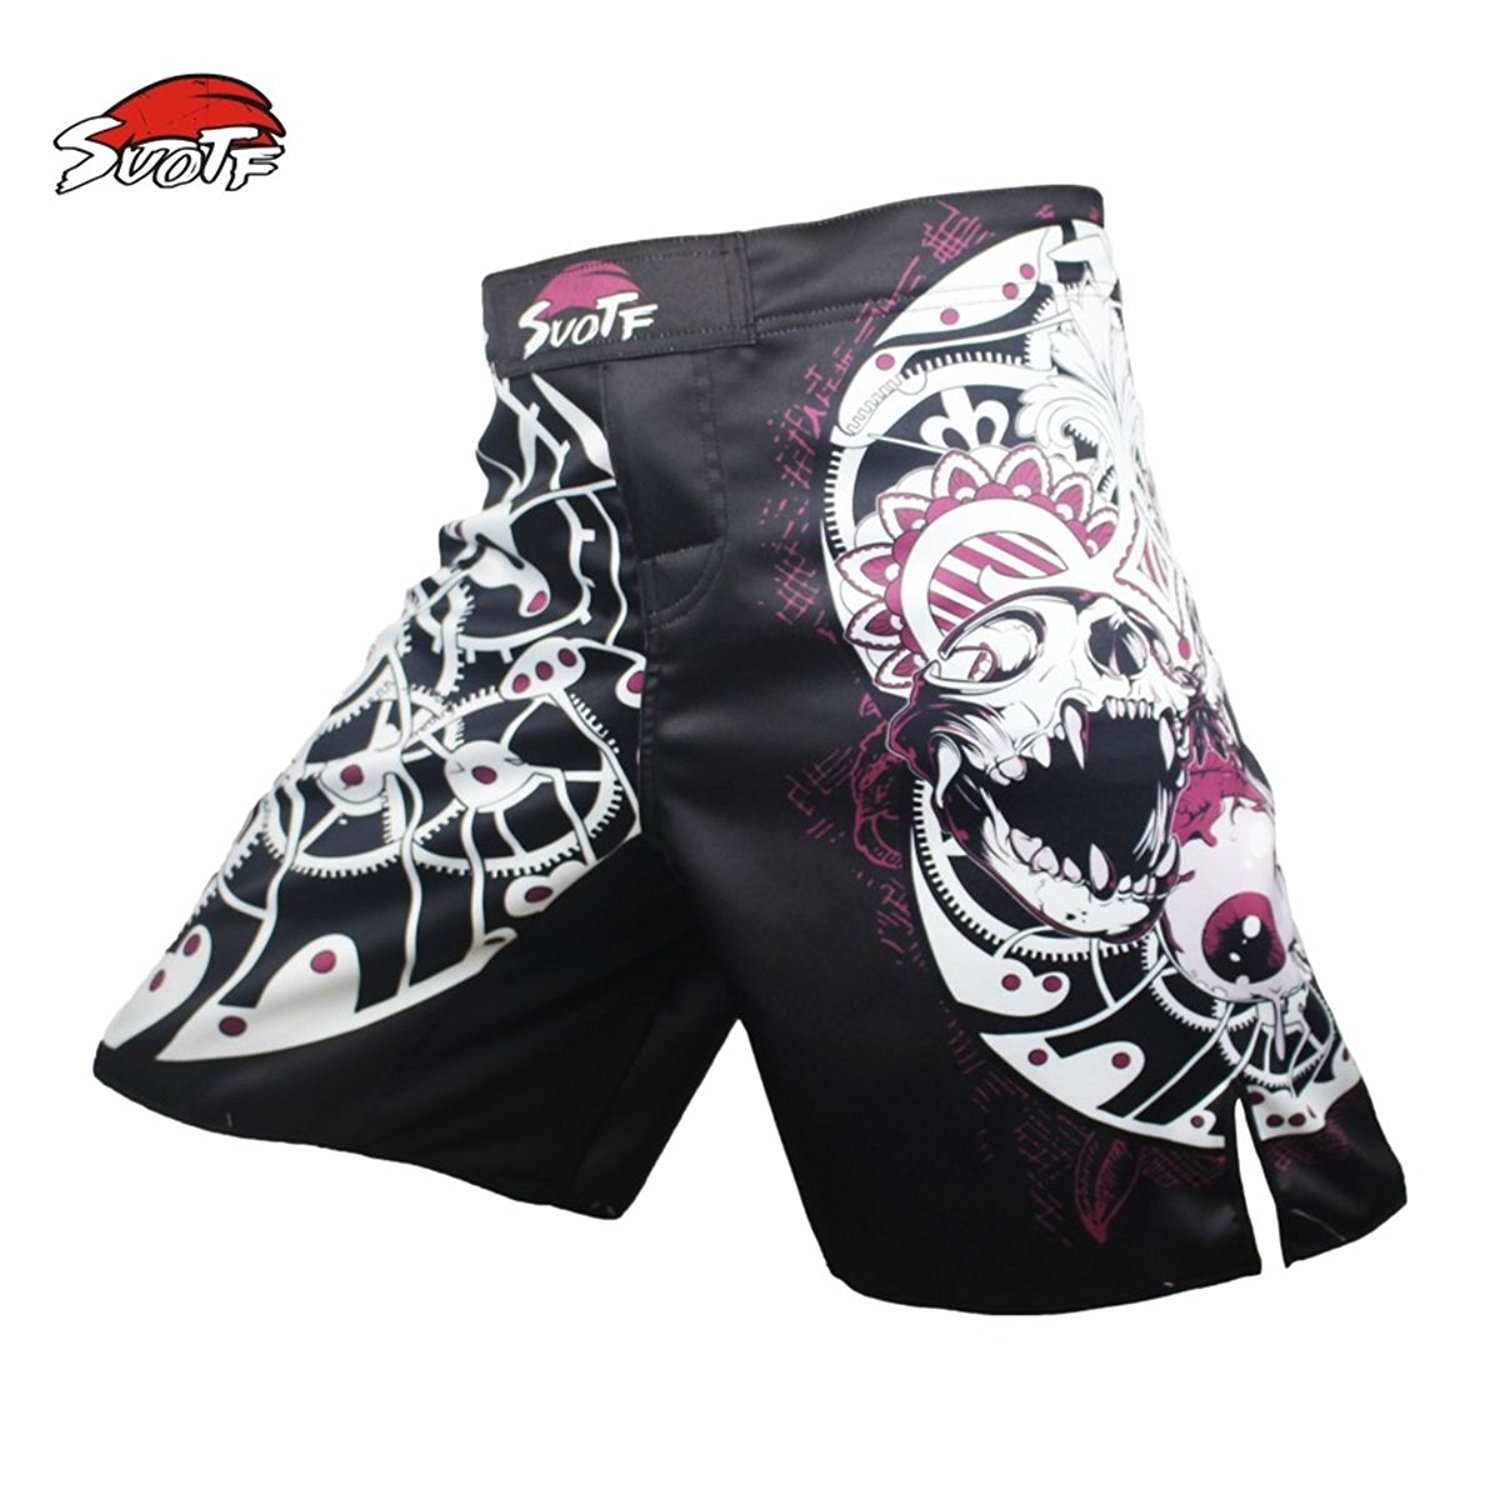 SUOTF MMA Boxing Pattern Motion Picture Cotton Loose Size Training Kickboxing Shorts MMA Fight Shorts Muay Thai MMA